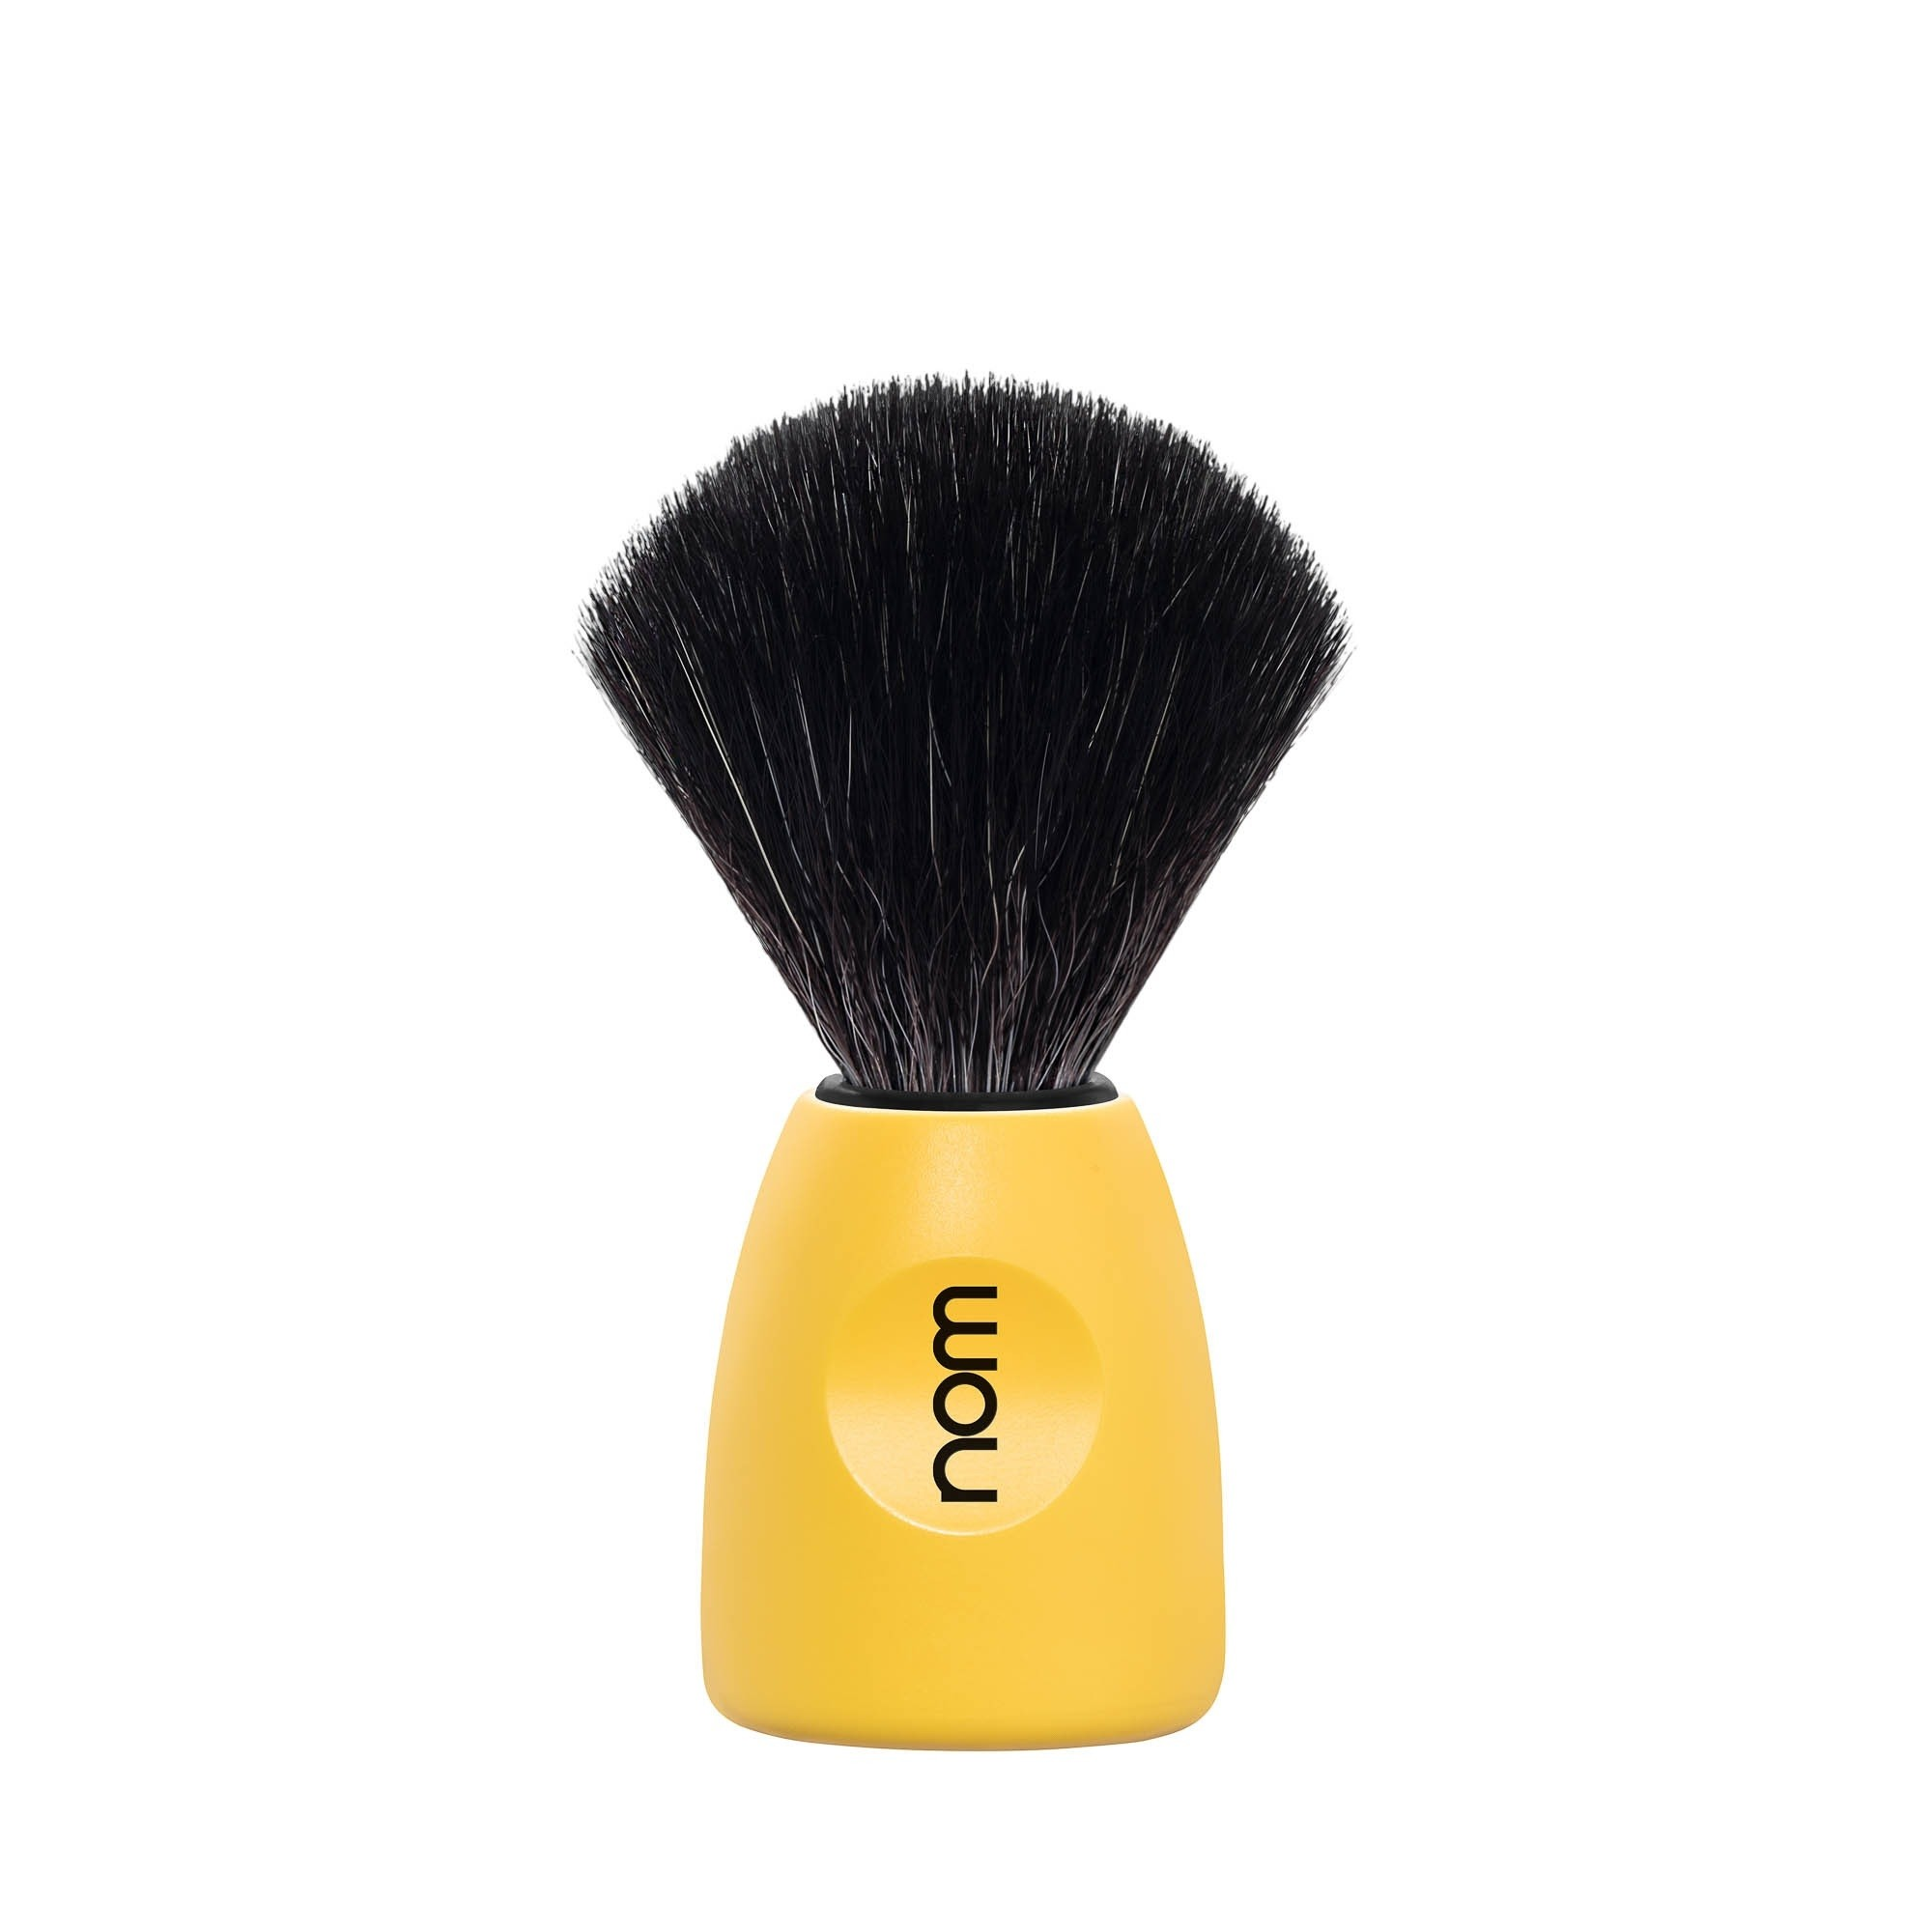 Mühle Nom Lasse Shaving Brush Black Fibre, lemon